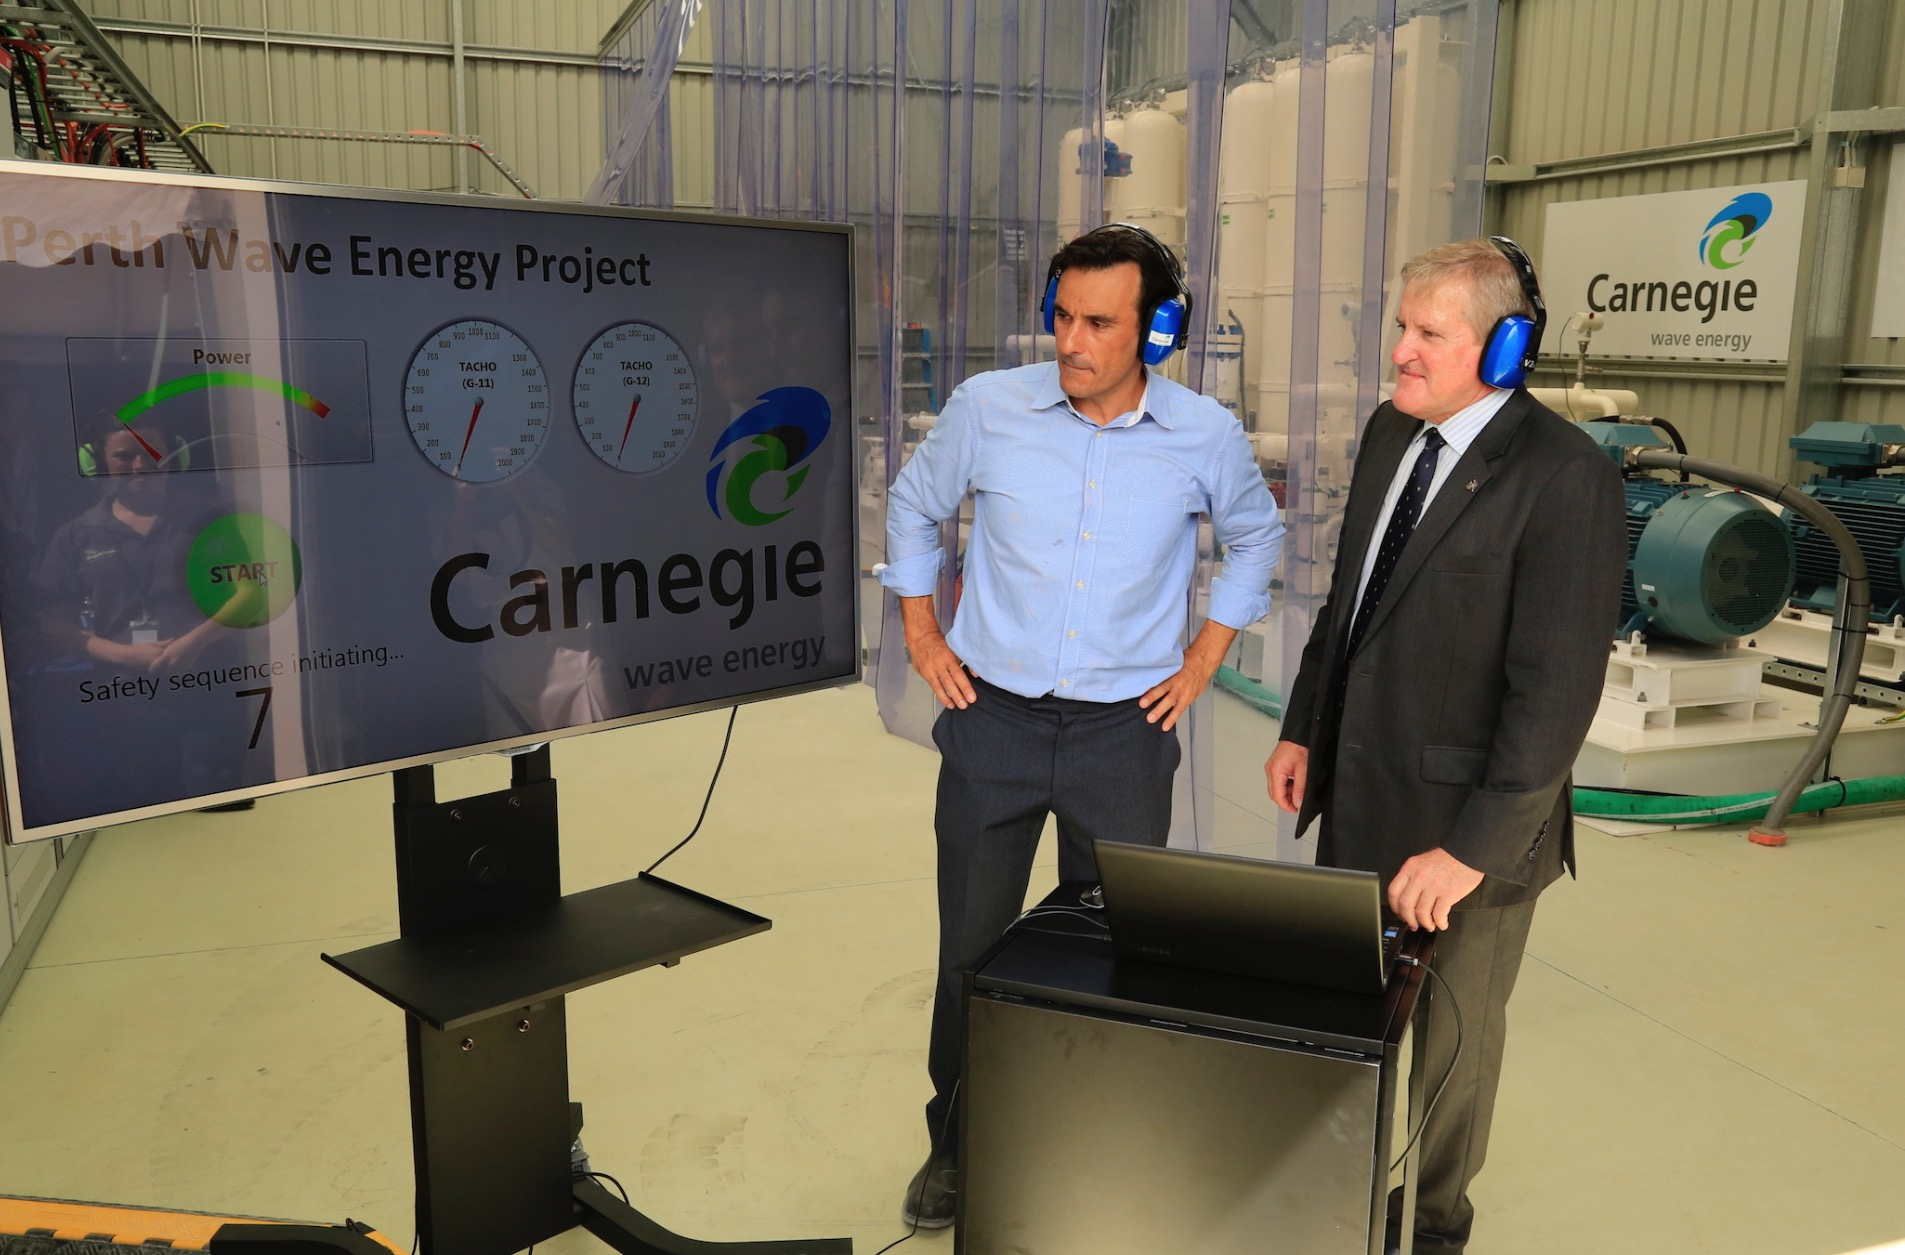 Carnegie Wave Energy Updates